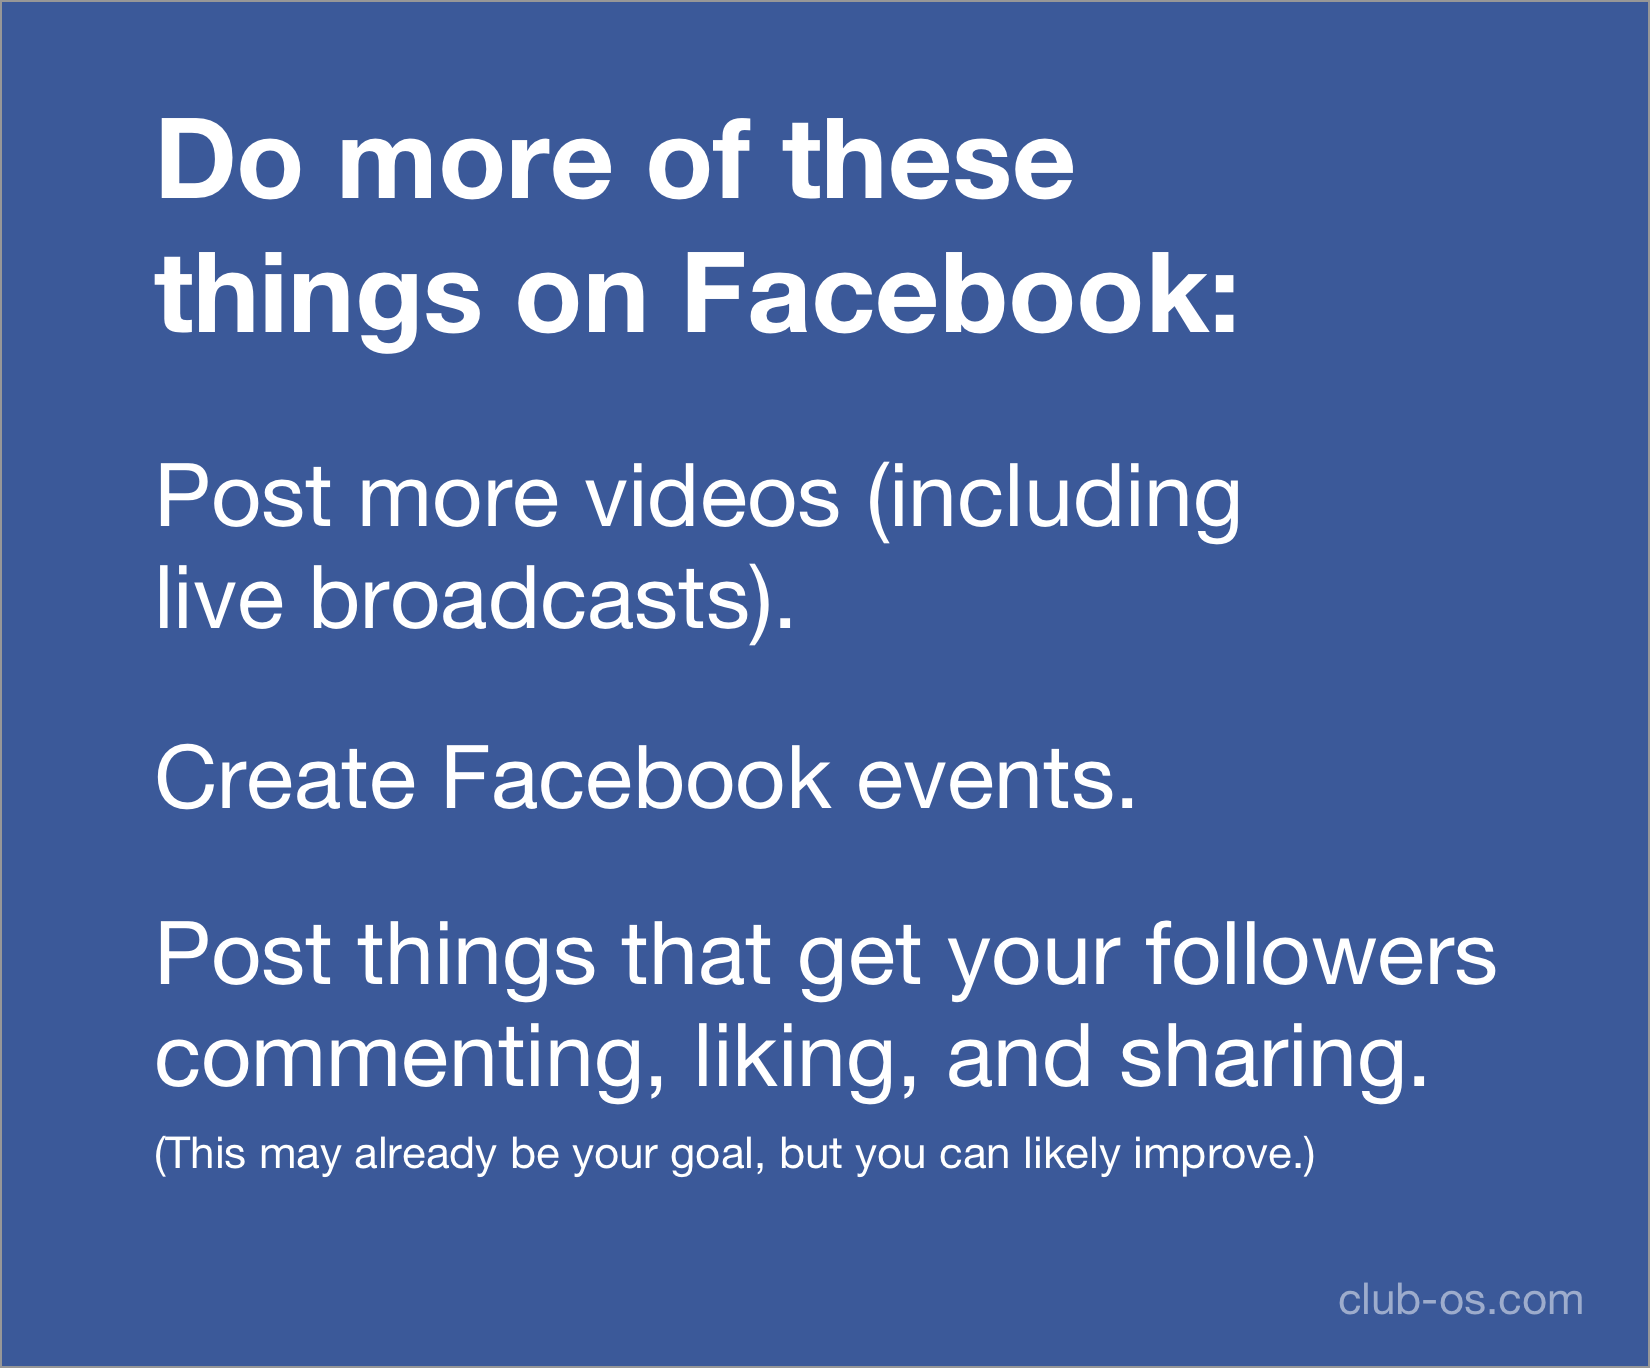 Do more of these things on your fitness business Facebook page